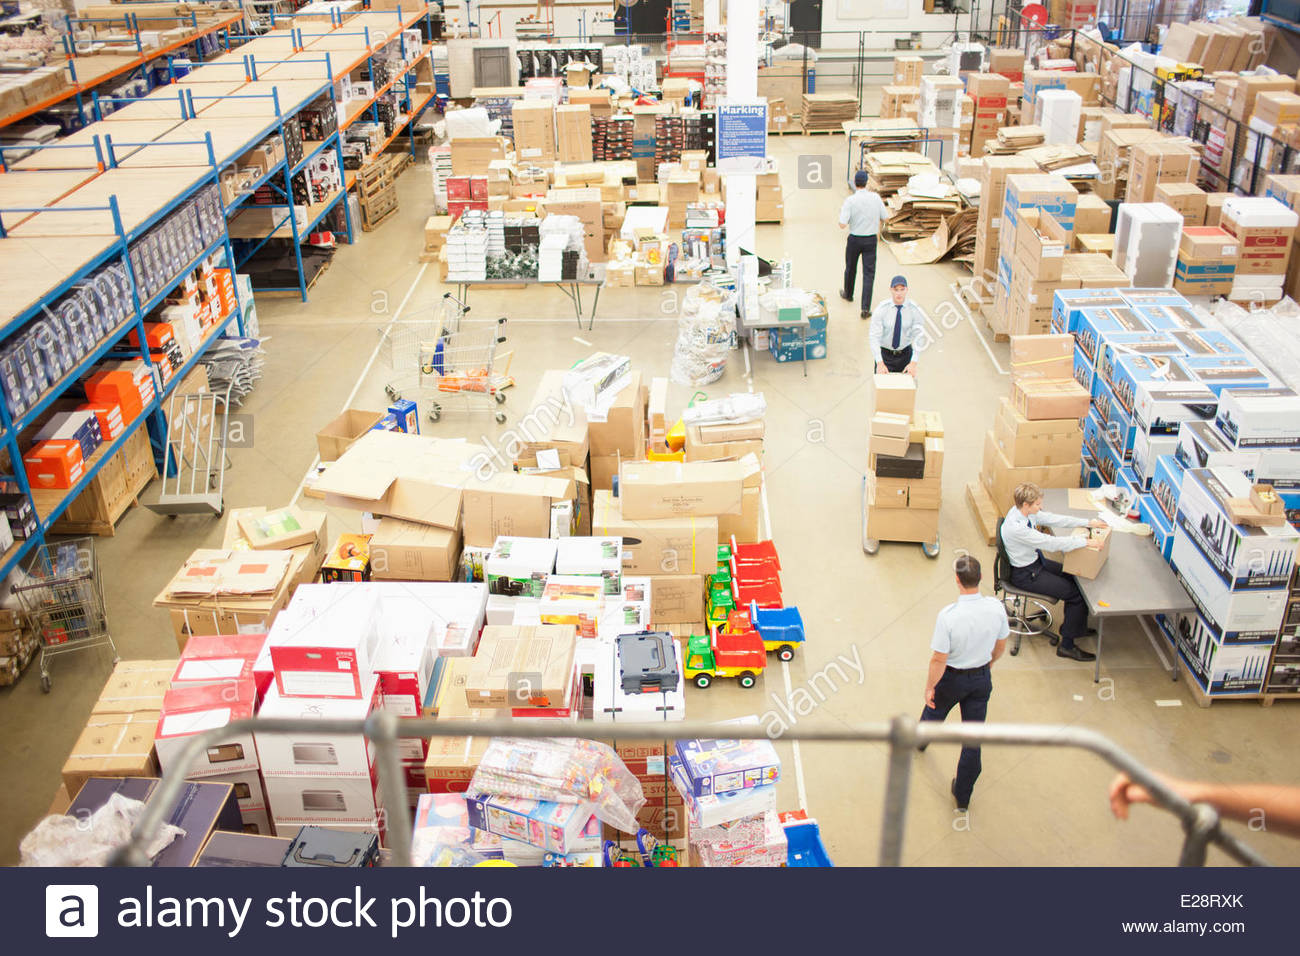 Shipping department - Stock Image